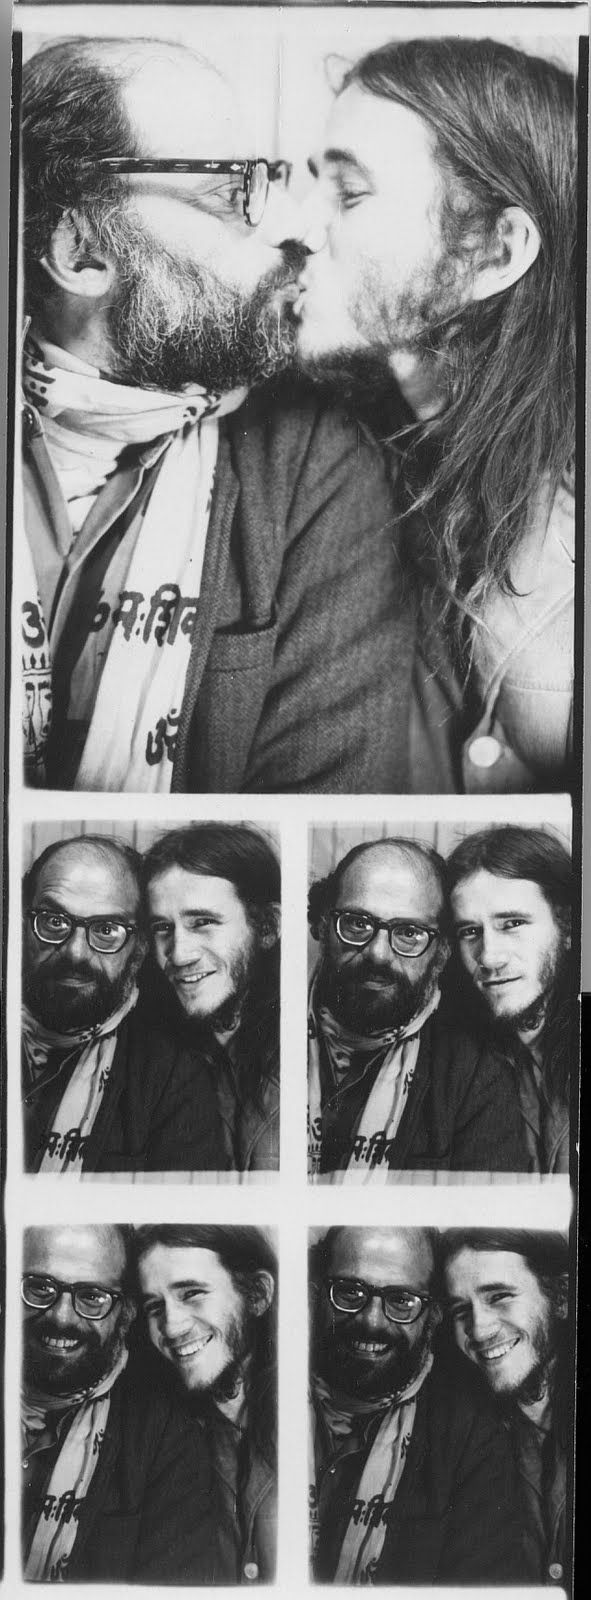 Allen Ginsberg and Peter Orlovsky.